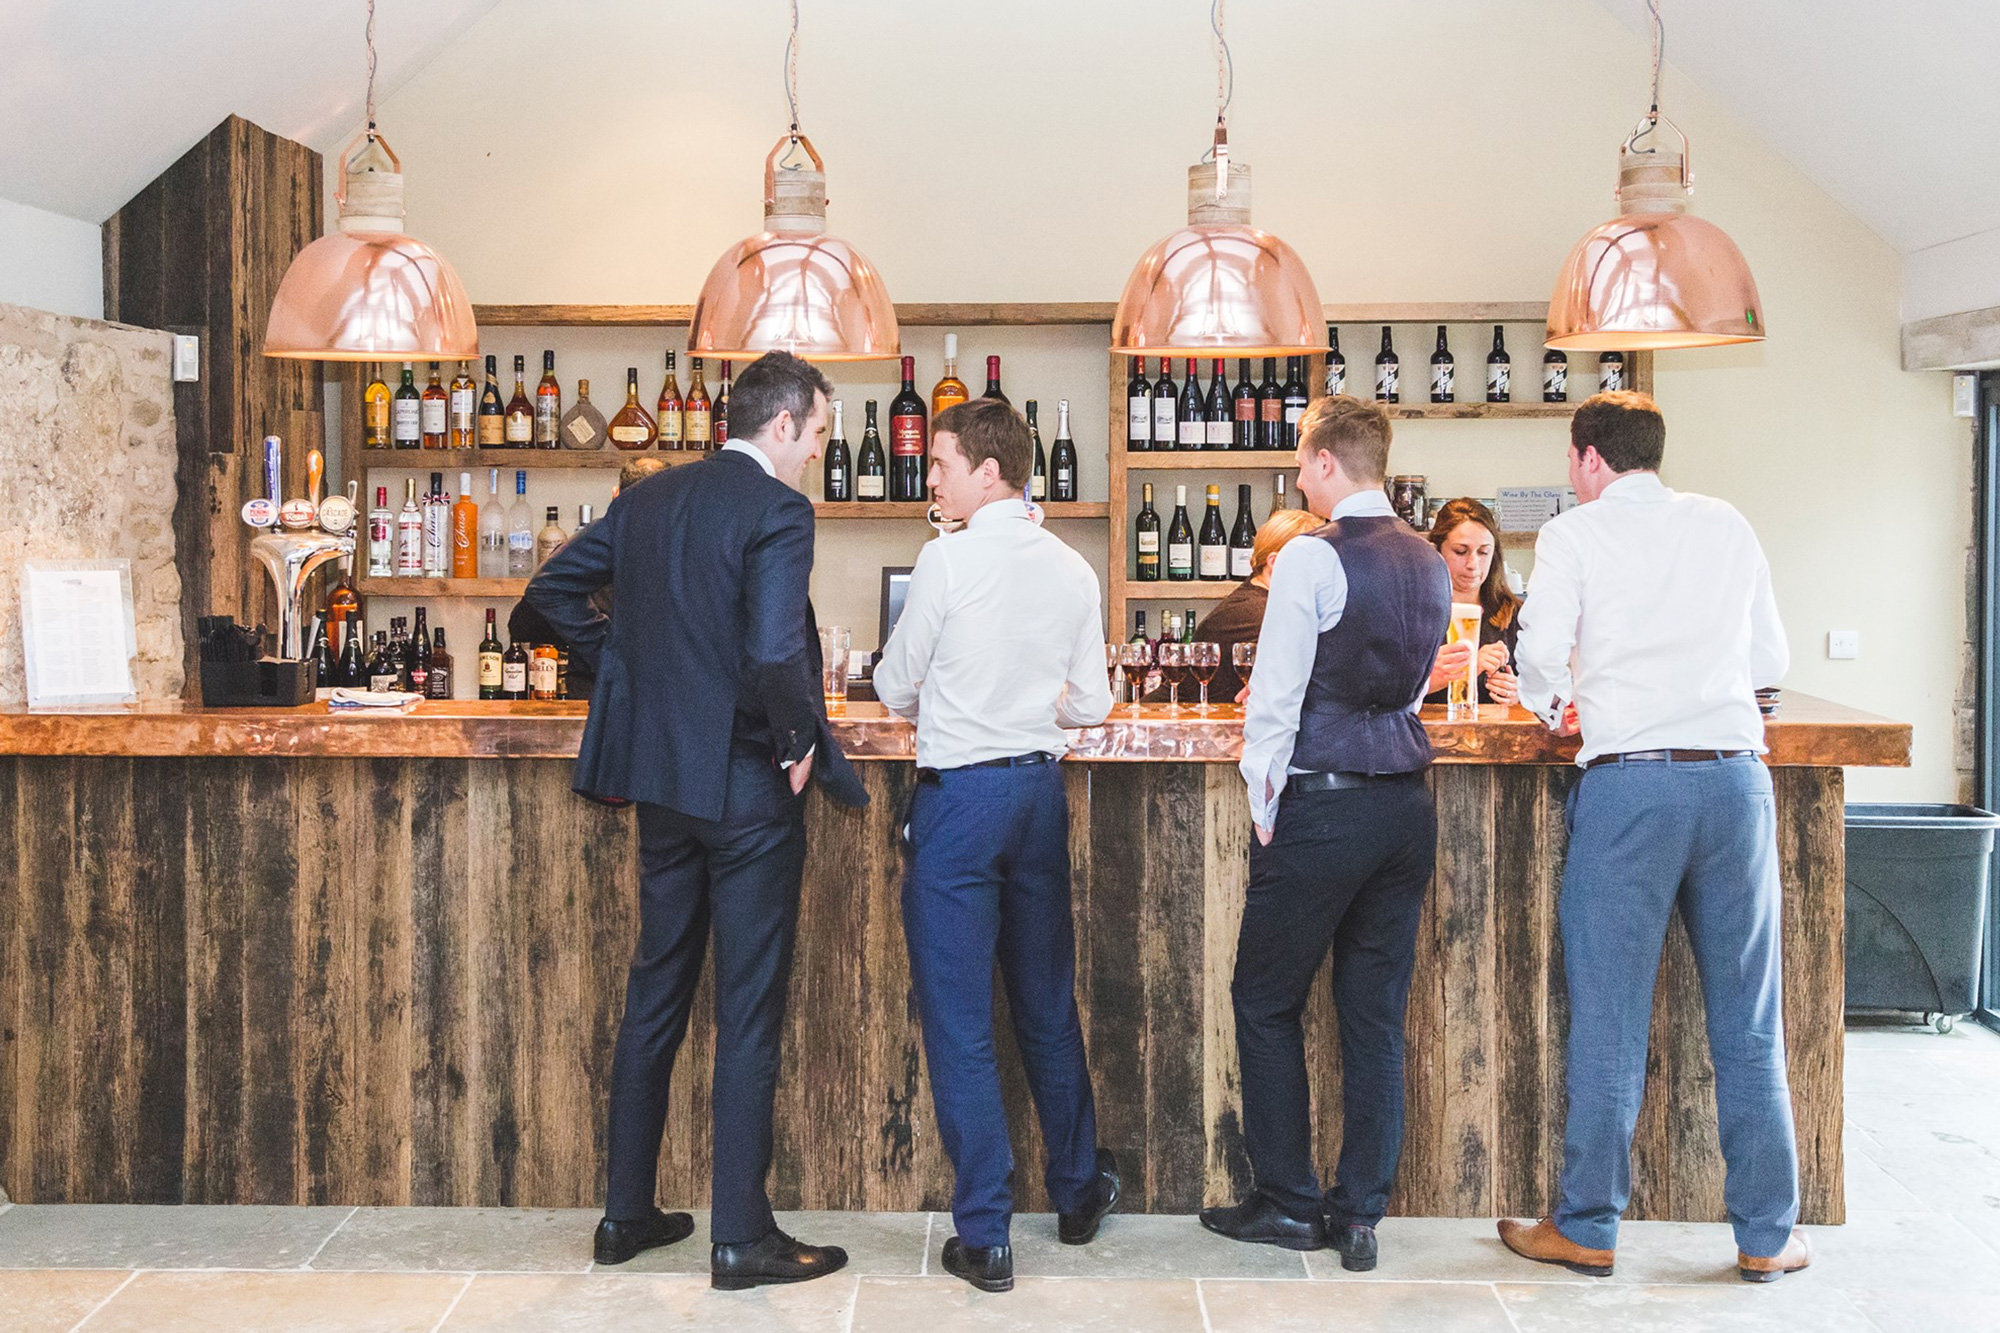 Men stood talking at bar with large pendant copper lights